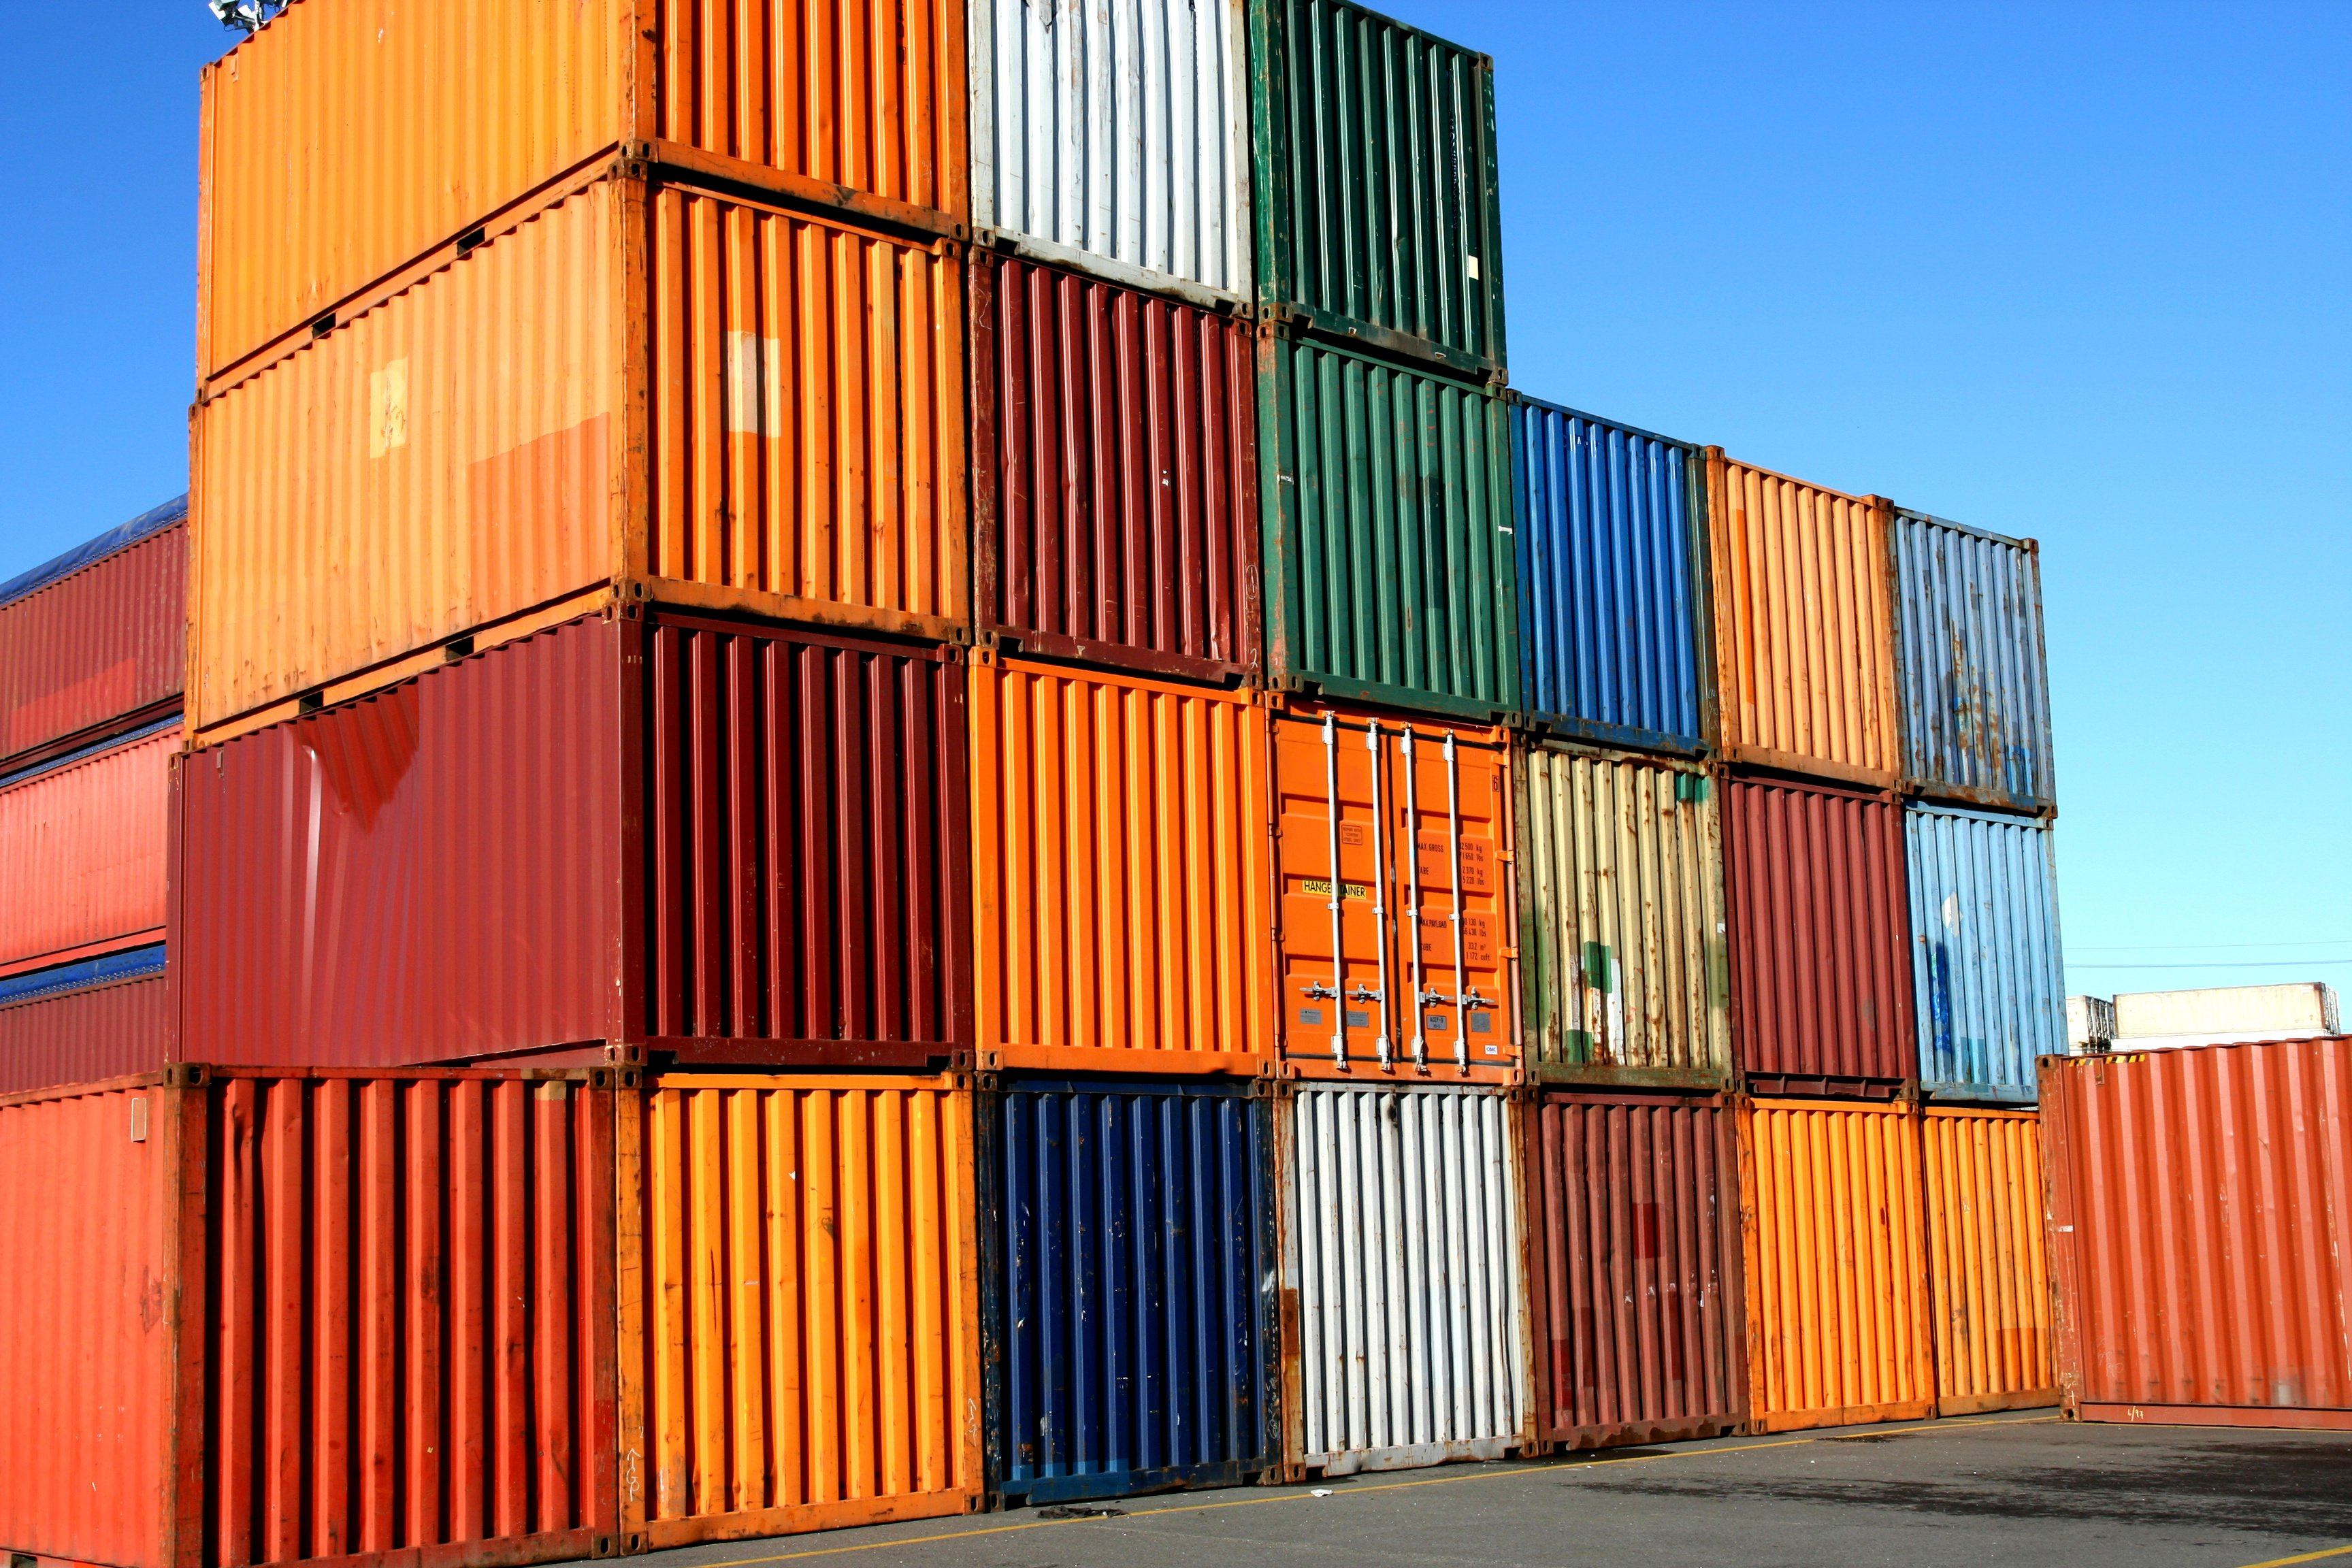 ISO Container Definition and Facts in 100 Words